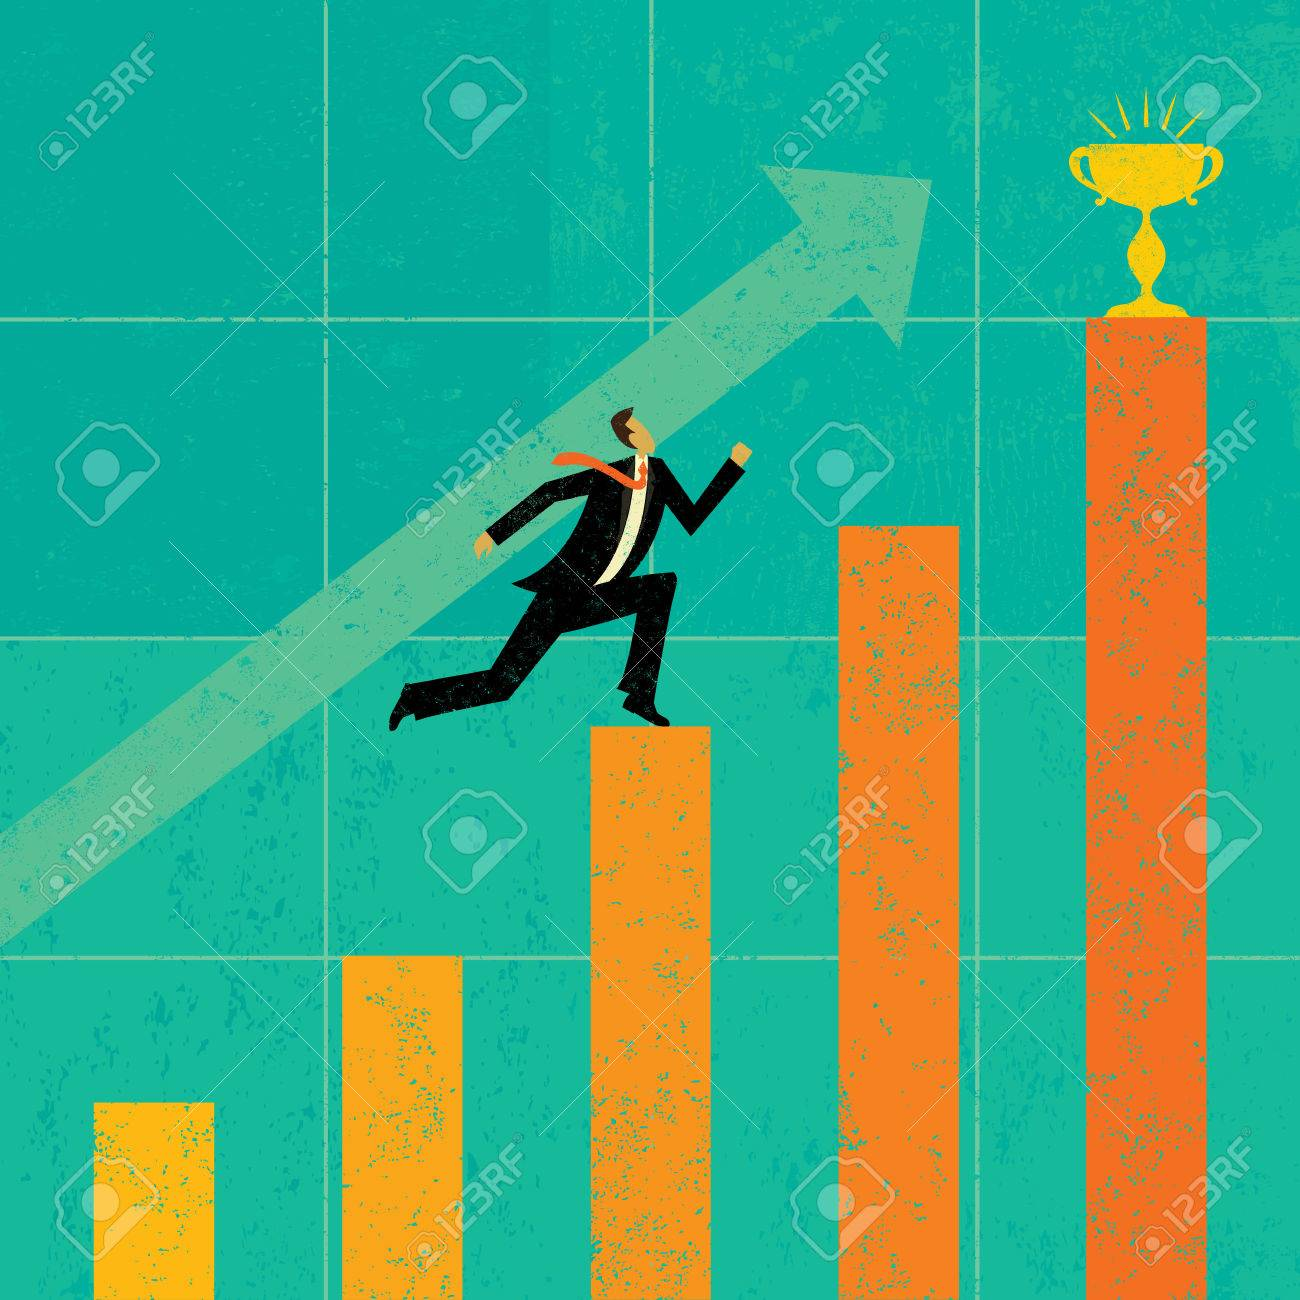 Striving for Higher Profits, A businessman striving to achieve his goal of higher profits. The man & bar graph and background are on separate labeled layers. - 37751787